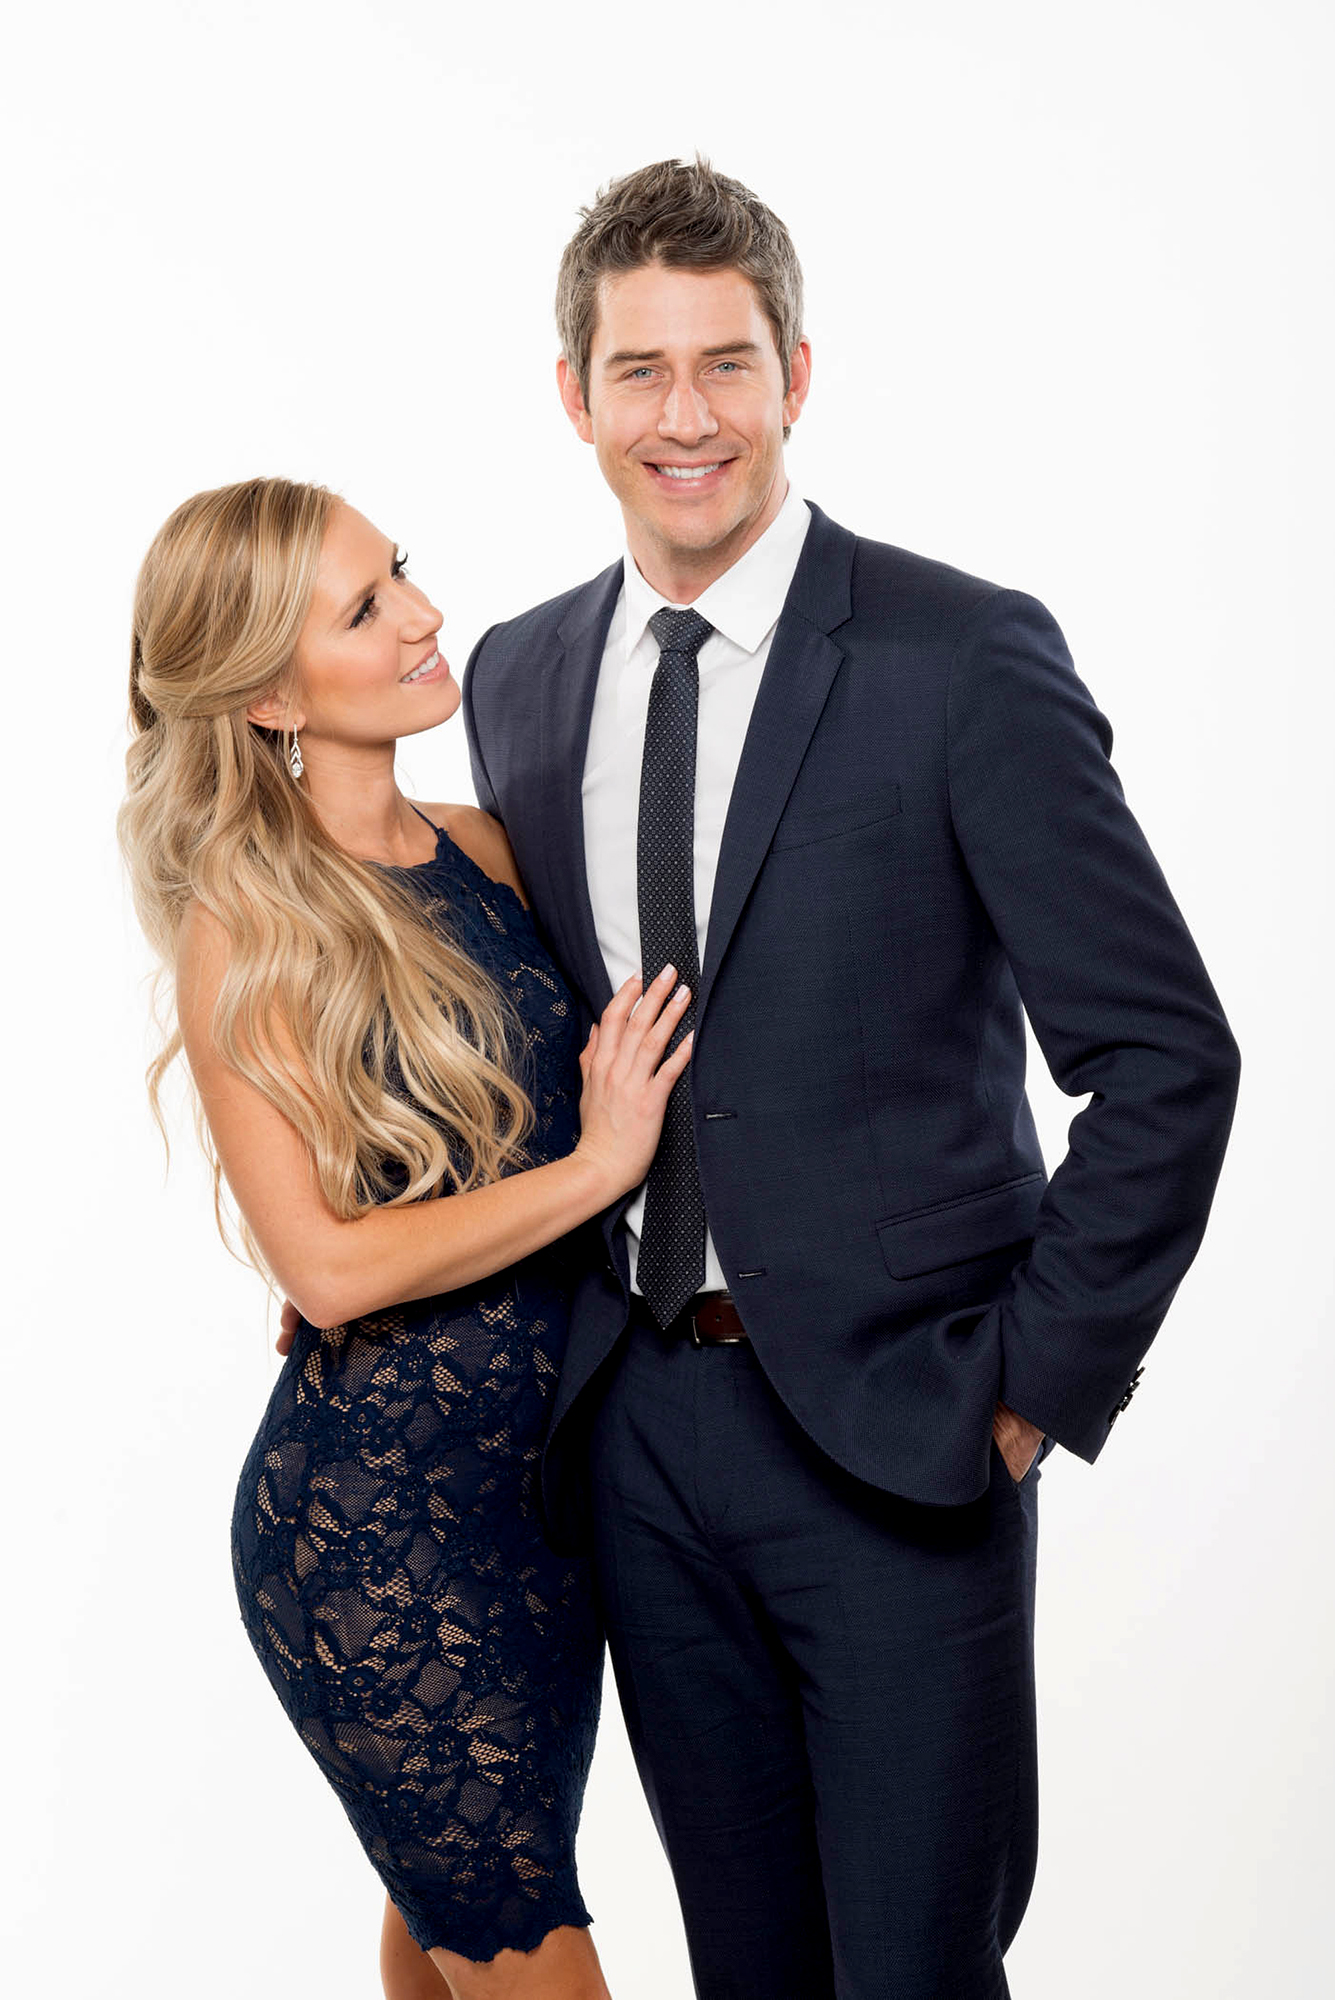 Every Bachelor Nation Couple That Has Tied the Knot - THE BACHELOR – After breaking off his engagement with Becca Kufrin on the dramatic season 22 Bachelor finale, Arie Luyendyk Jr. proposed to Lauren Burnham on The Bachelor: After the Final Rose, a two-hour live special, TUESDAY, MARCH 6 (8:00-10:01 p.m. EST), on The ABC Television Network. (Photo by Lorenzo Bevilaqua/ABC via Getty Images)